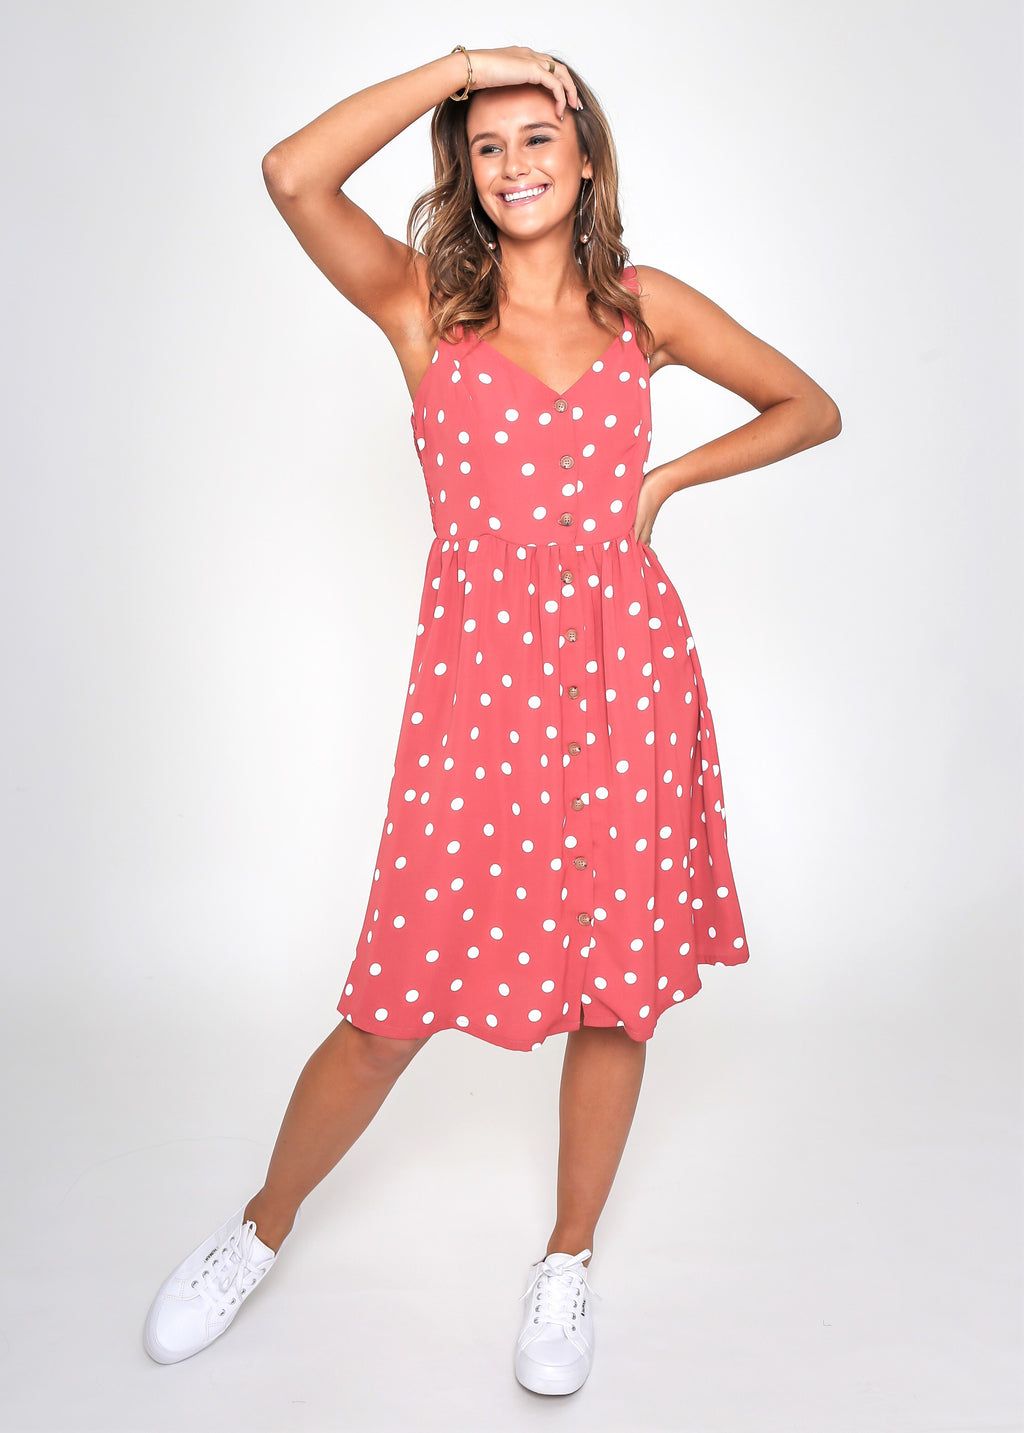 LOLA DRESS - RED SPOT - MARK DOWN MADNESS